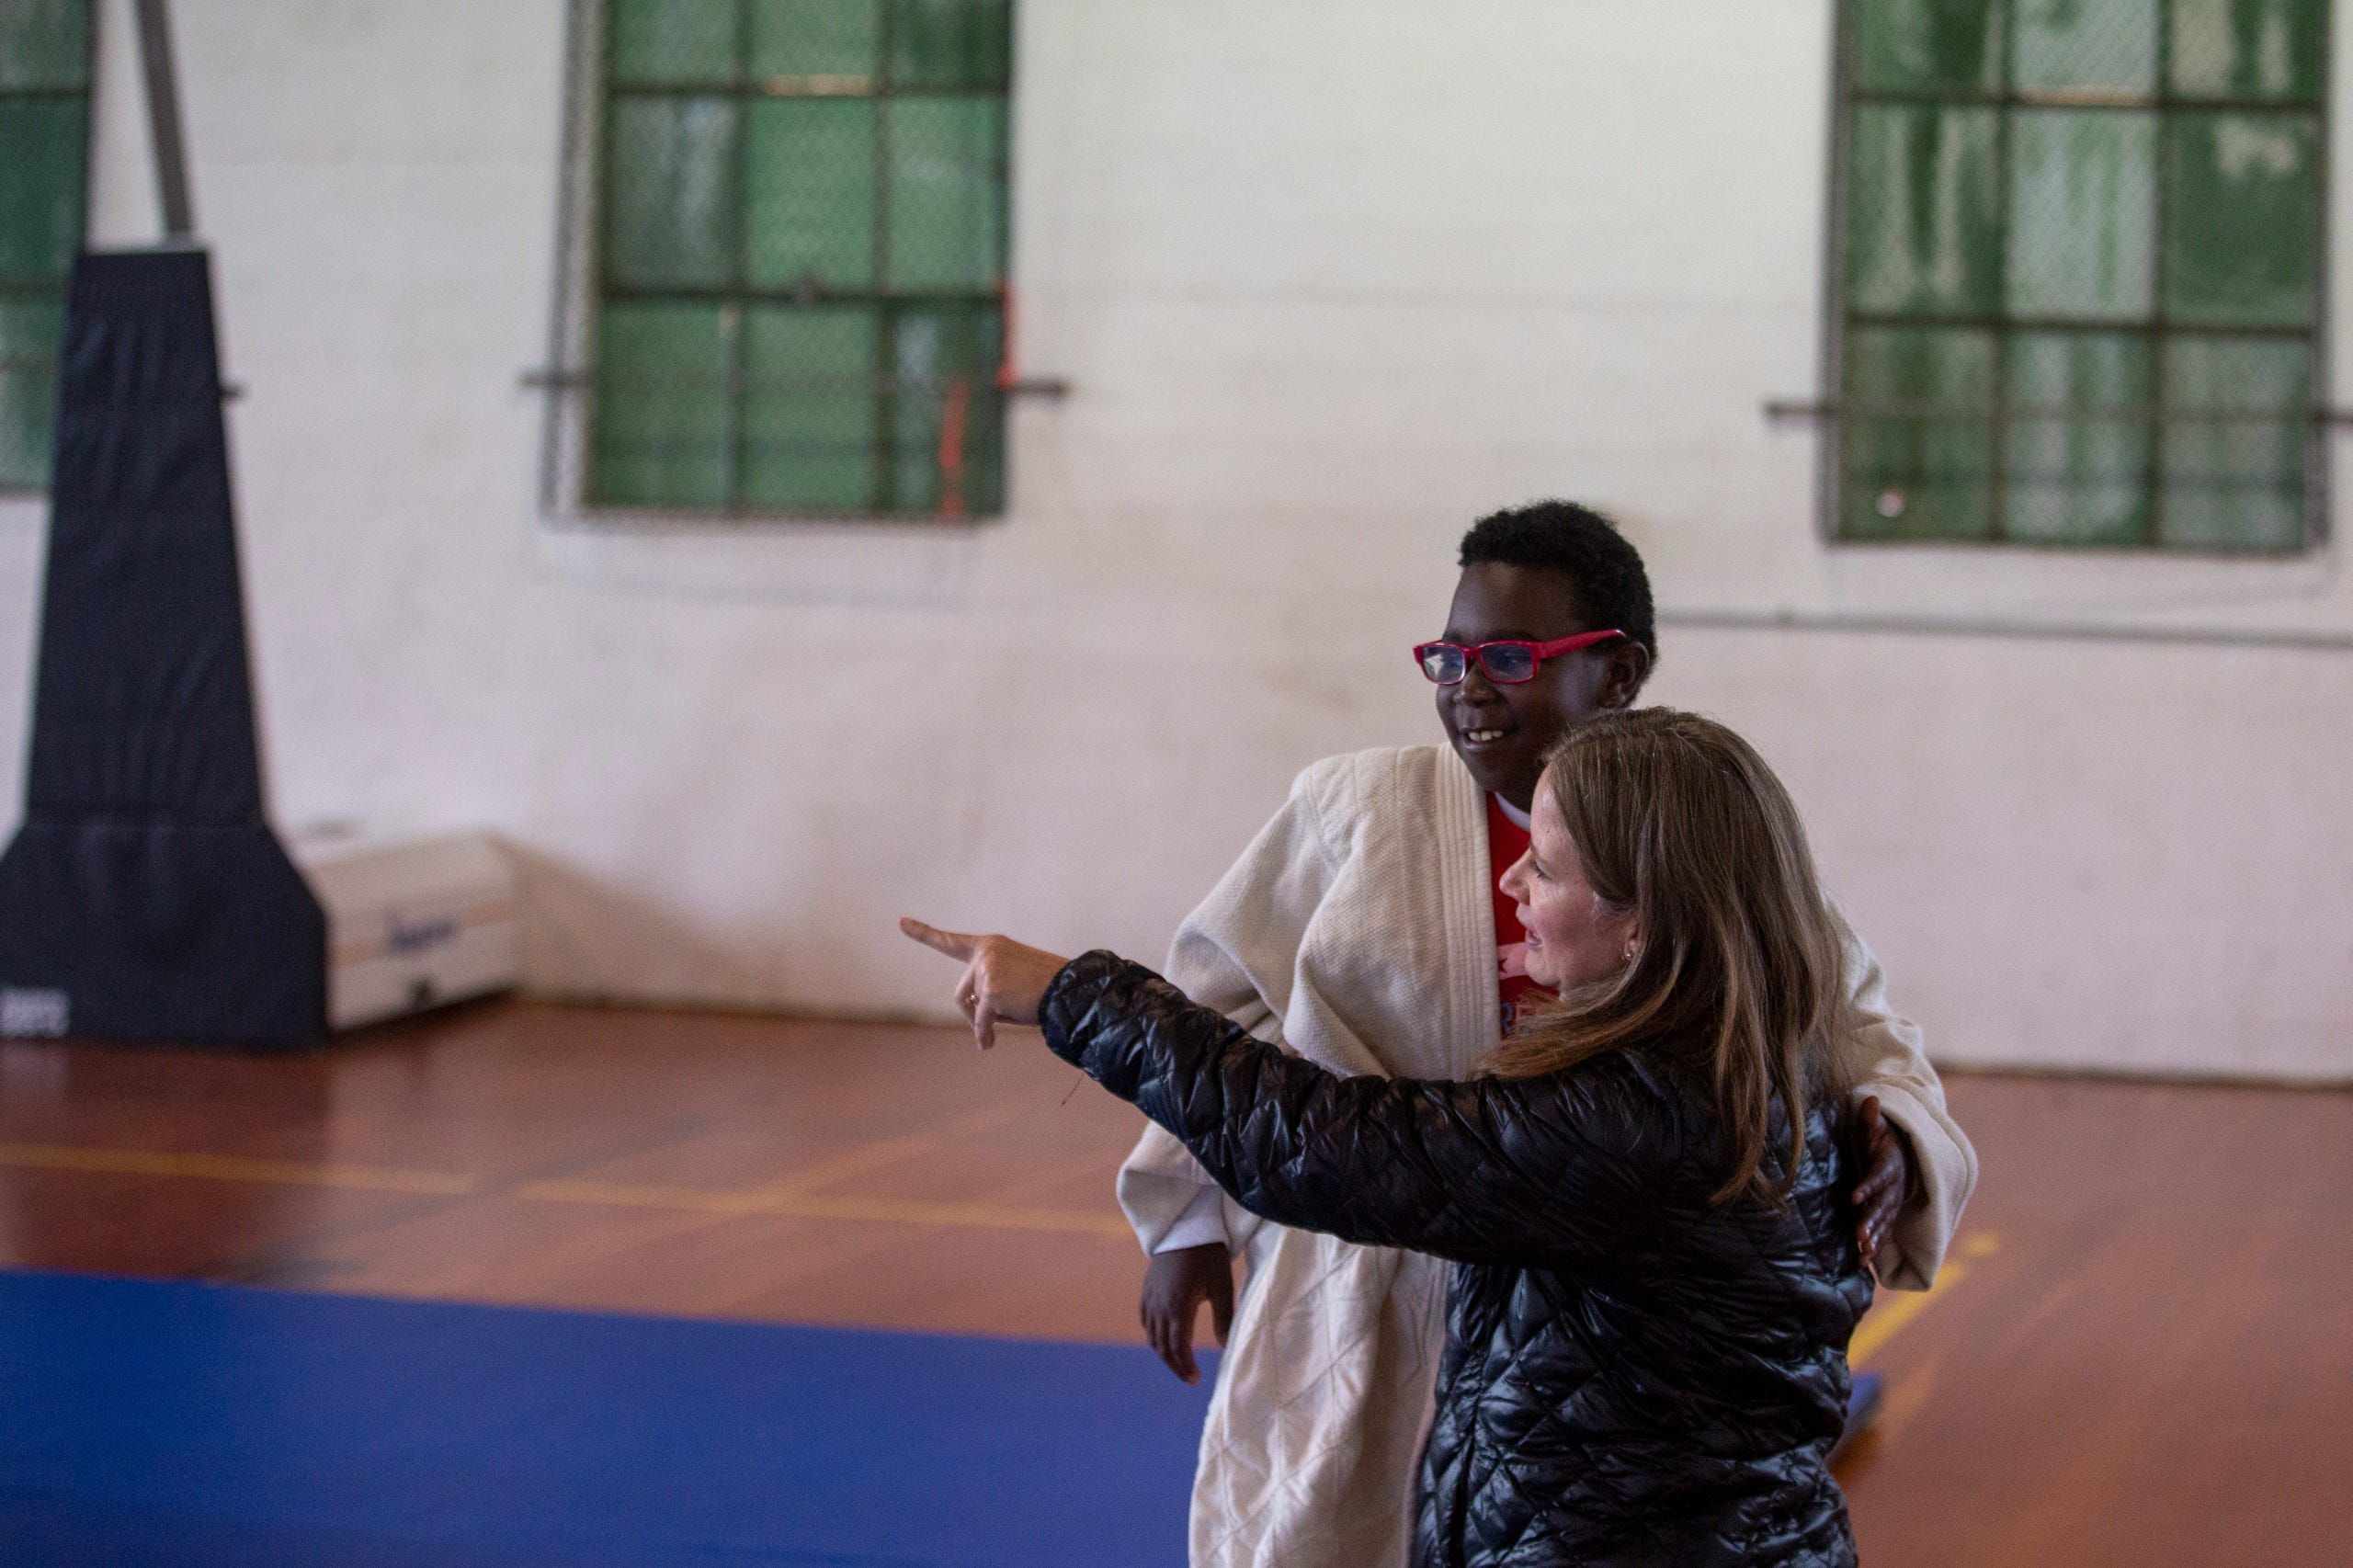 "Pasha Knolporr, a 5th grader, and Kristin Gaultat prepare for judo practice at the Oregon School for the Deaf in Salem, Oct. 4, 2019. NWABA, the Northwest Association for Blind Athletes, hosted a ""Paralympic experience"" for students with visual impairments in the state. After the Oregon School for the Blind closed in 2009, many visually impaired students and their families lost access to state-funded resources, like sports programs. The BVIS (Blind Visually Impaired Student) Fund gives programs like NWABA funds to enhance the lives of low vision/blind children across the state."